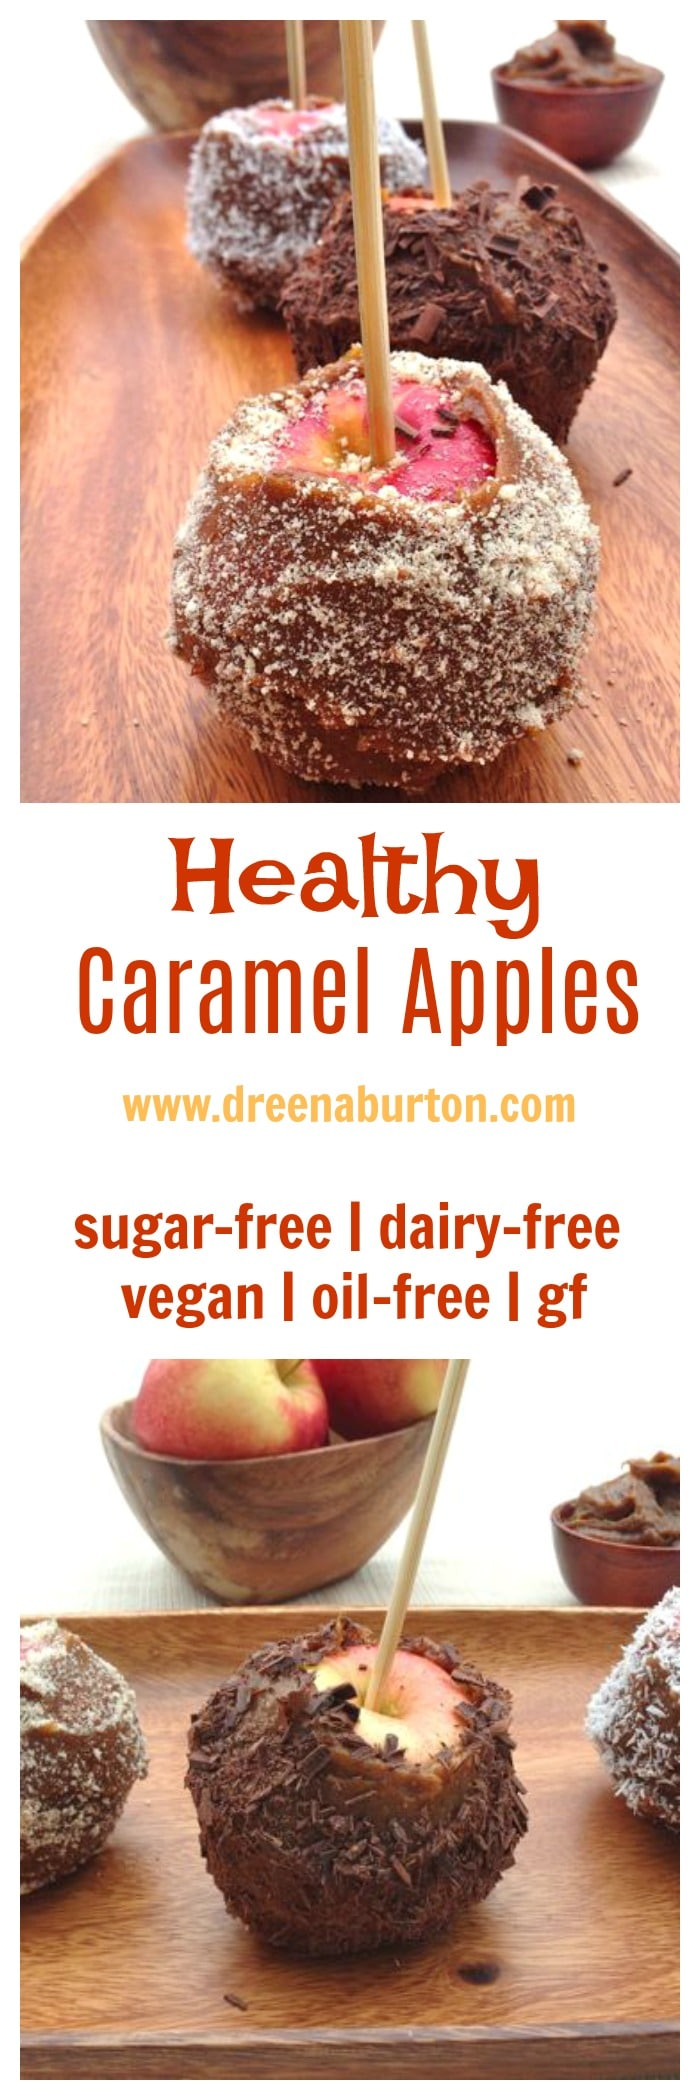 HEALTHY Caramel Apples! sugar-free, vegan, dairy-free, oil-free, gluten-free